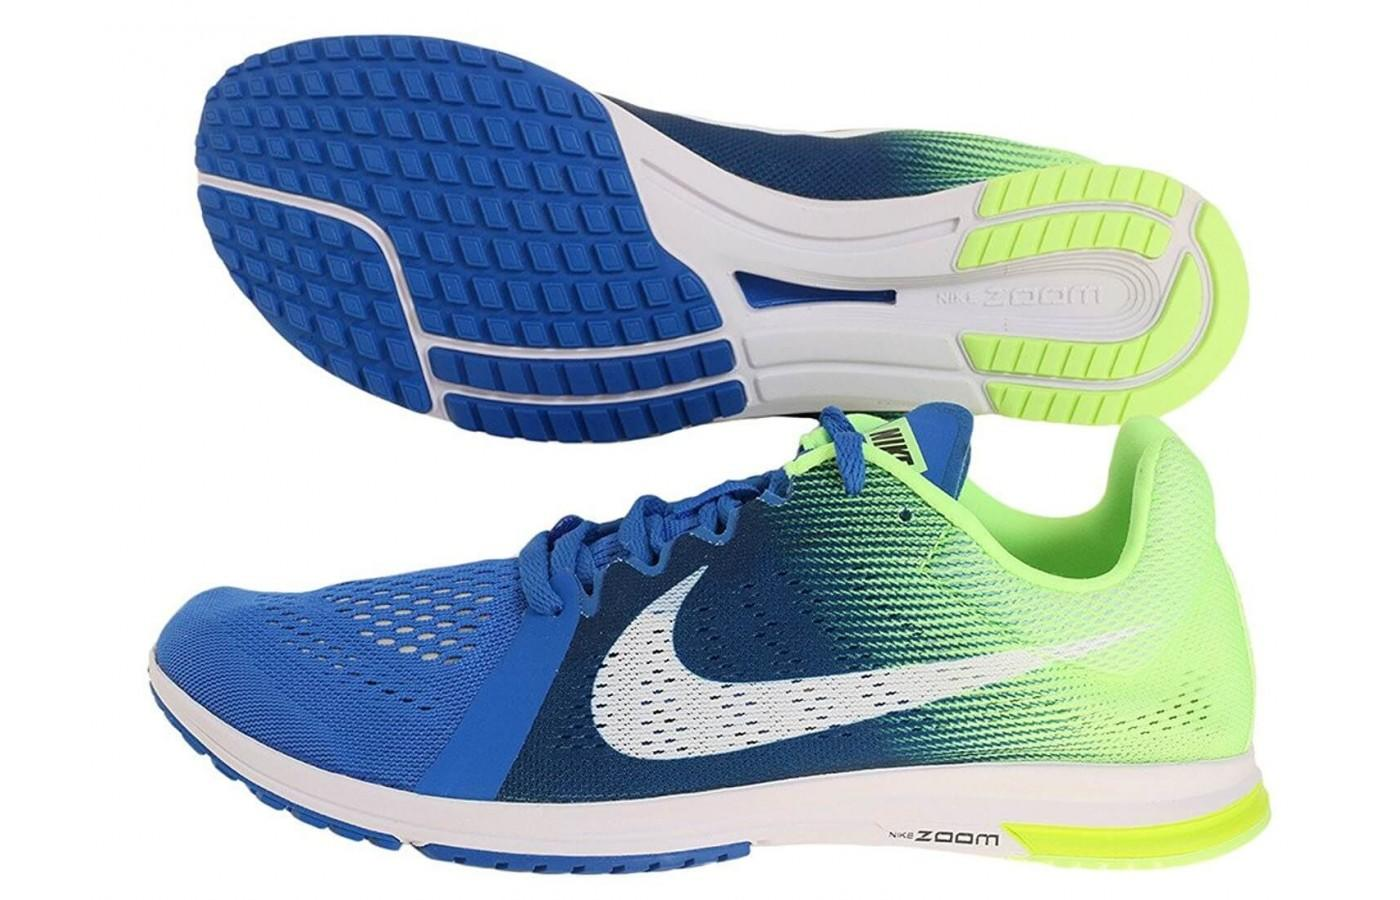 The Nike Zoom Streak LT3 is a fast, lightweight racing shoe.